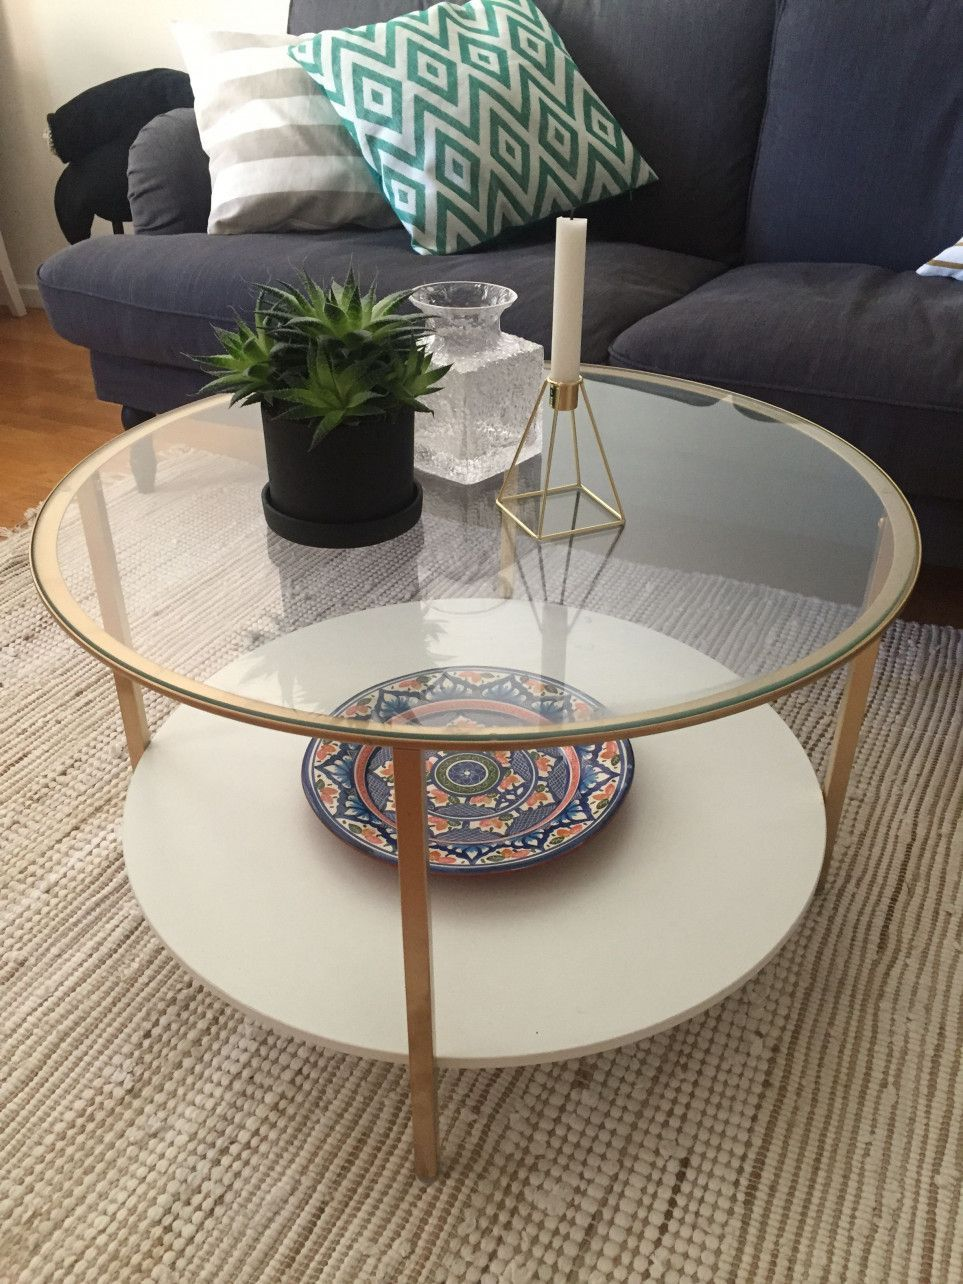 6 Luxury Interior Design Tips That Can Fit Any Project Round Glass Coffee Table Ikea Coffee Table Coffee Table Ikea Hack [ 1284 x 963 Pixel ]